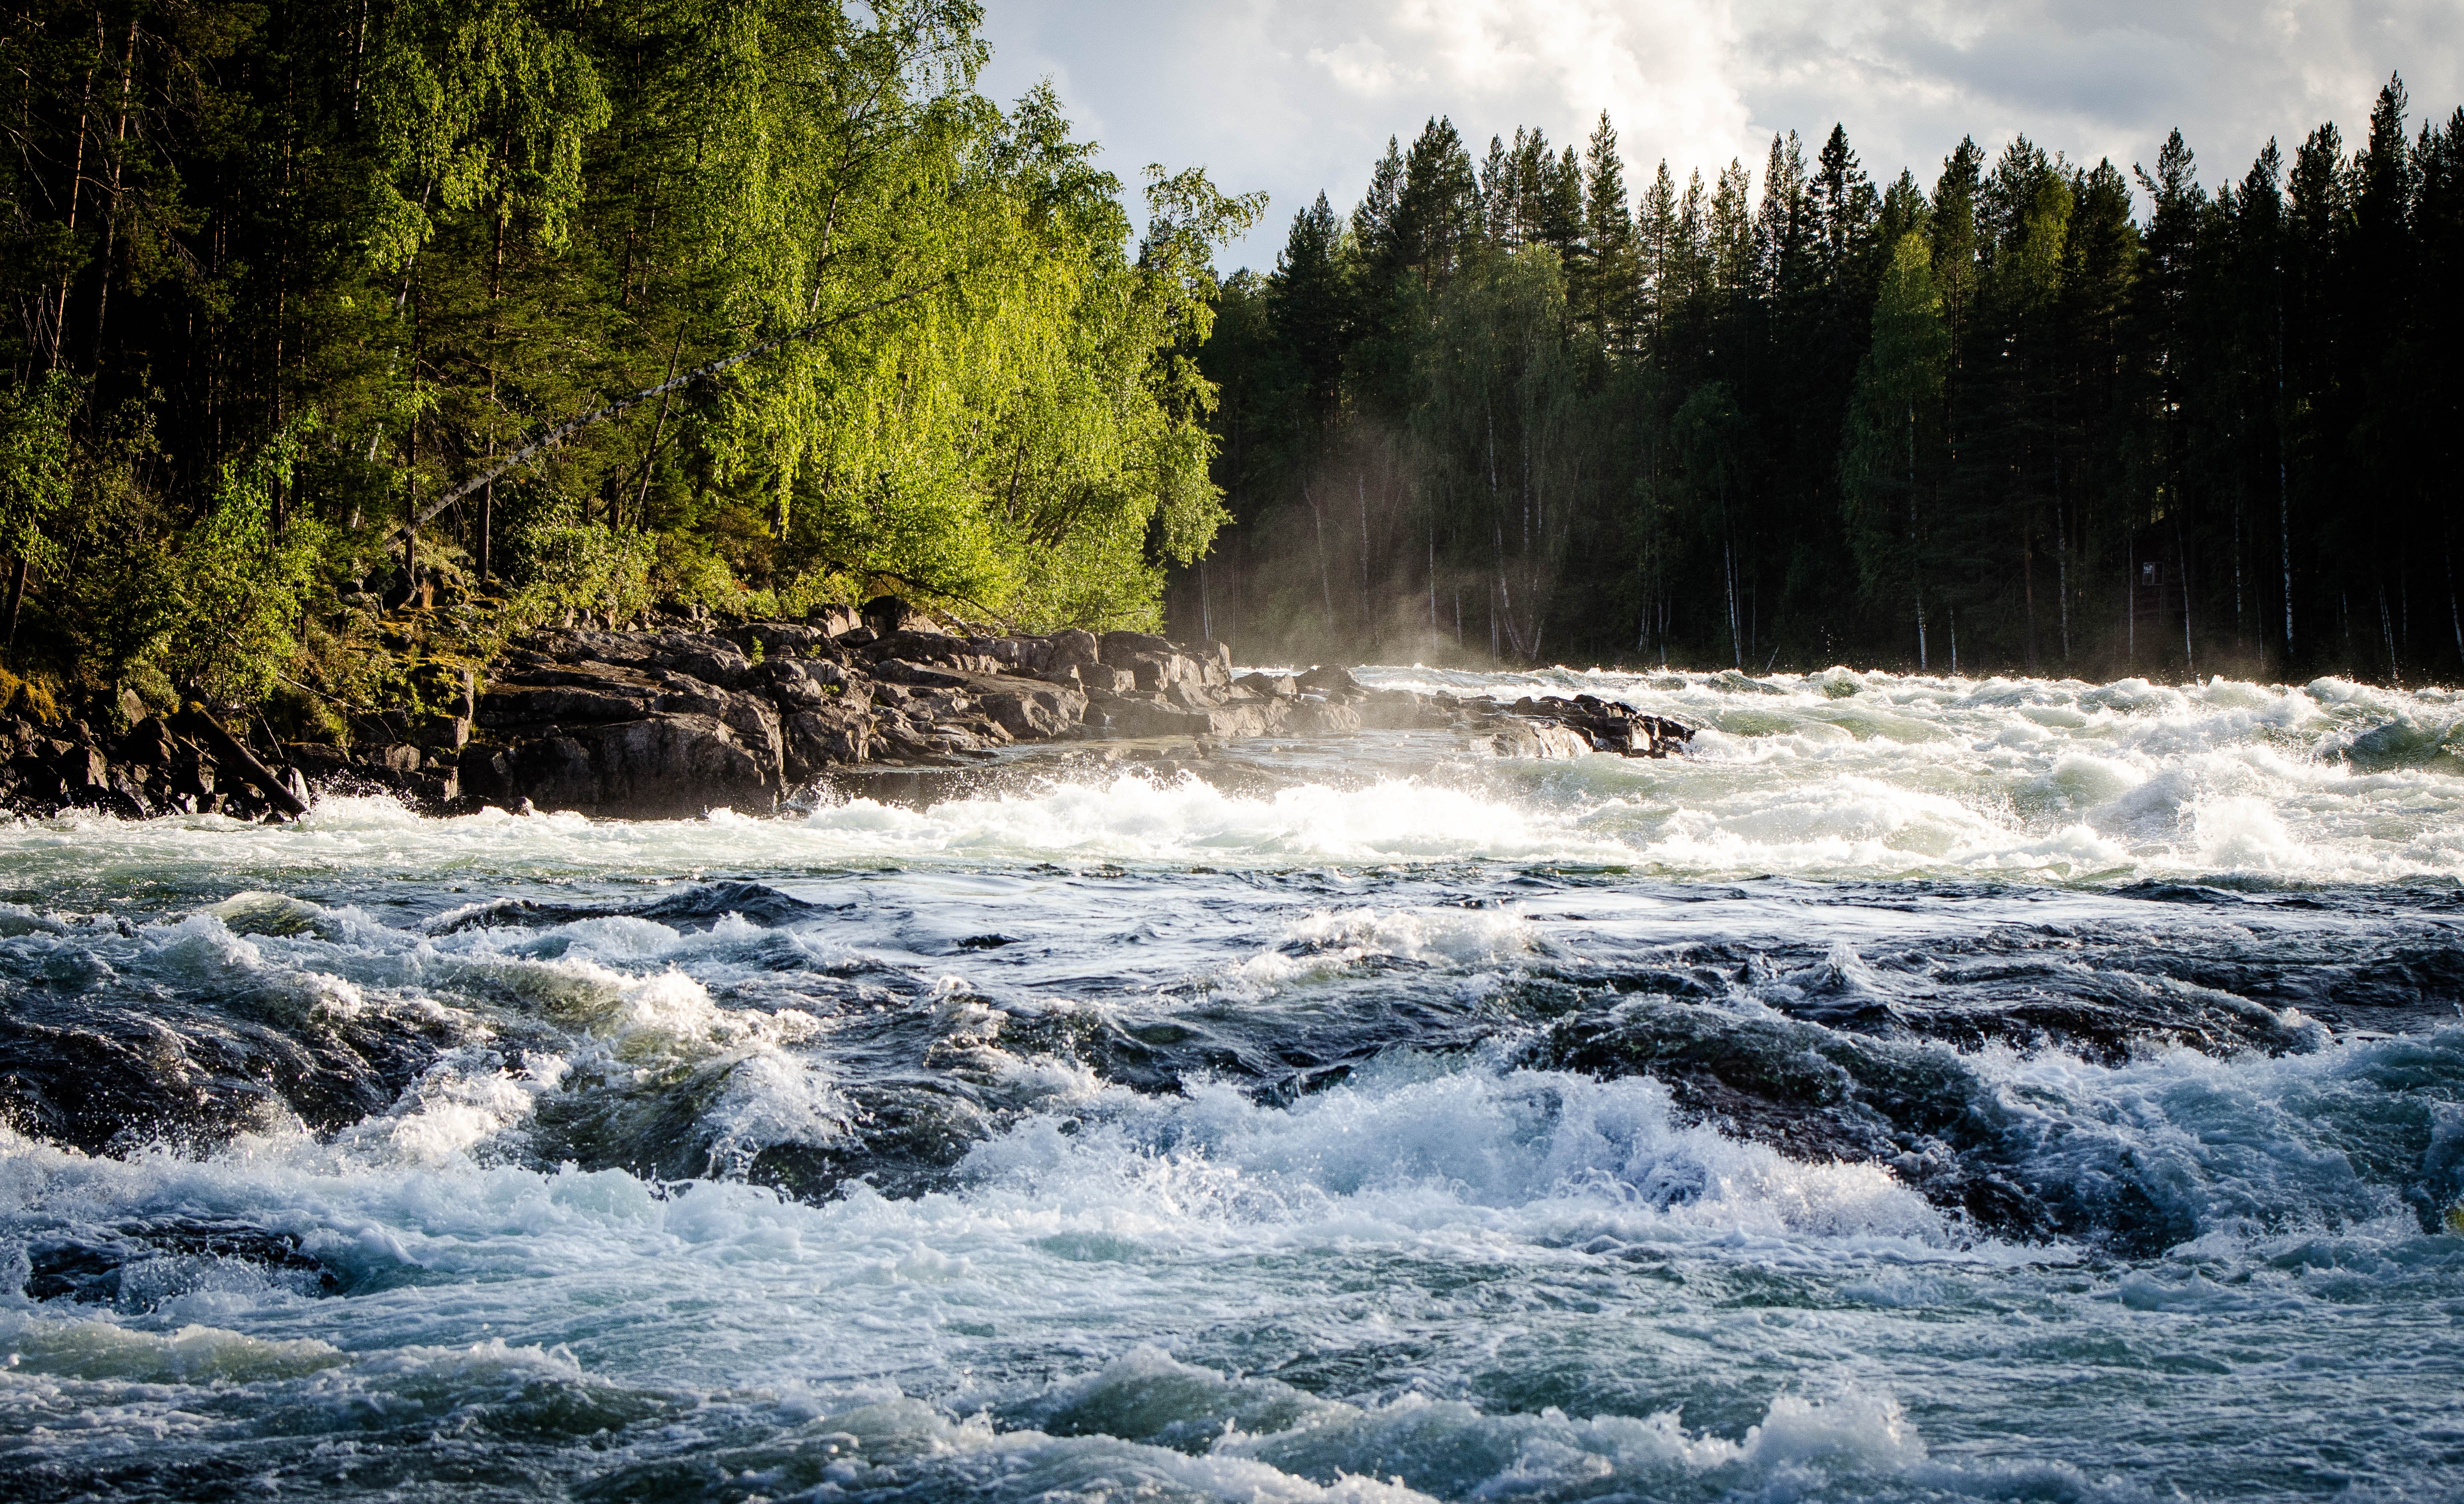 The biggest and strongest rapids in the north region (Storforsen, Swed